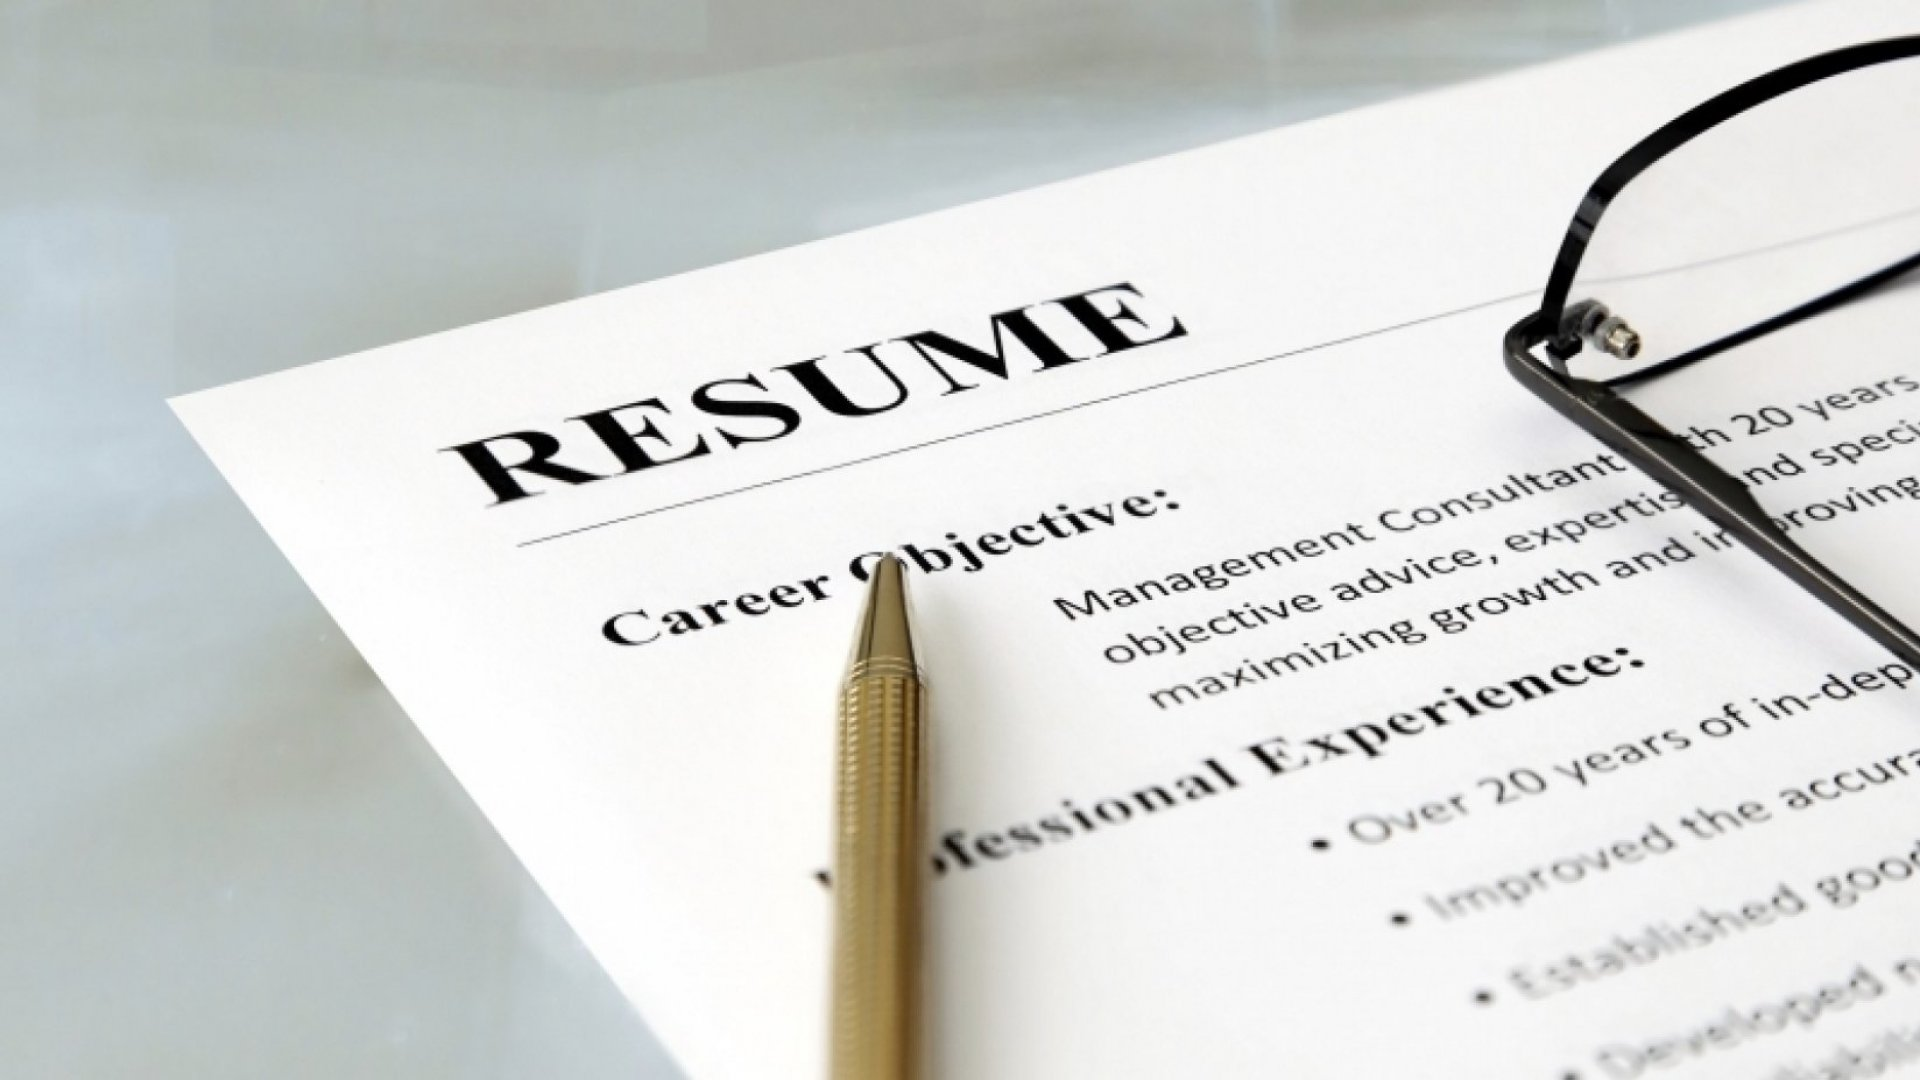 Do you need a resume to get a job research paper globalization india